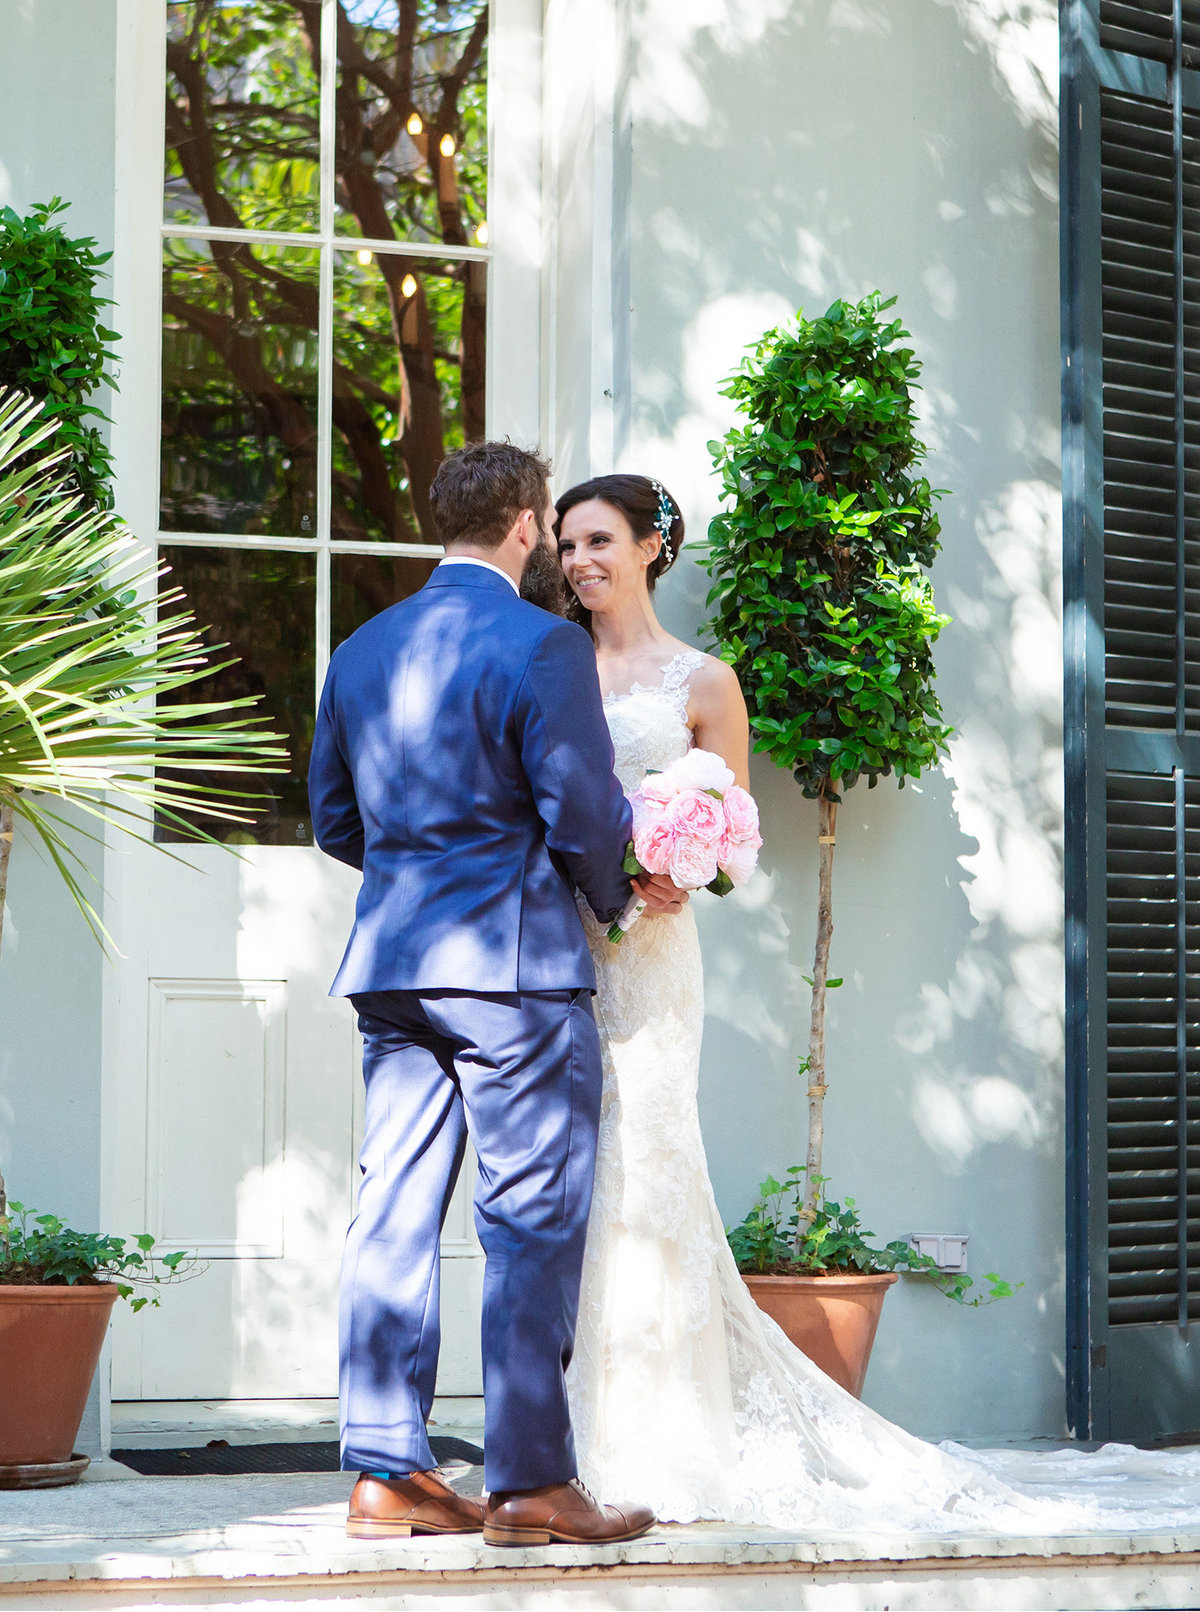 nola bride smiling at groom before destination wedding ceremony at The Terrell House